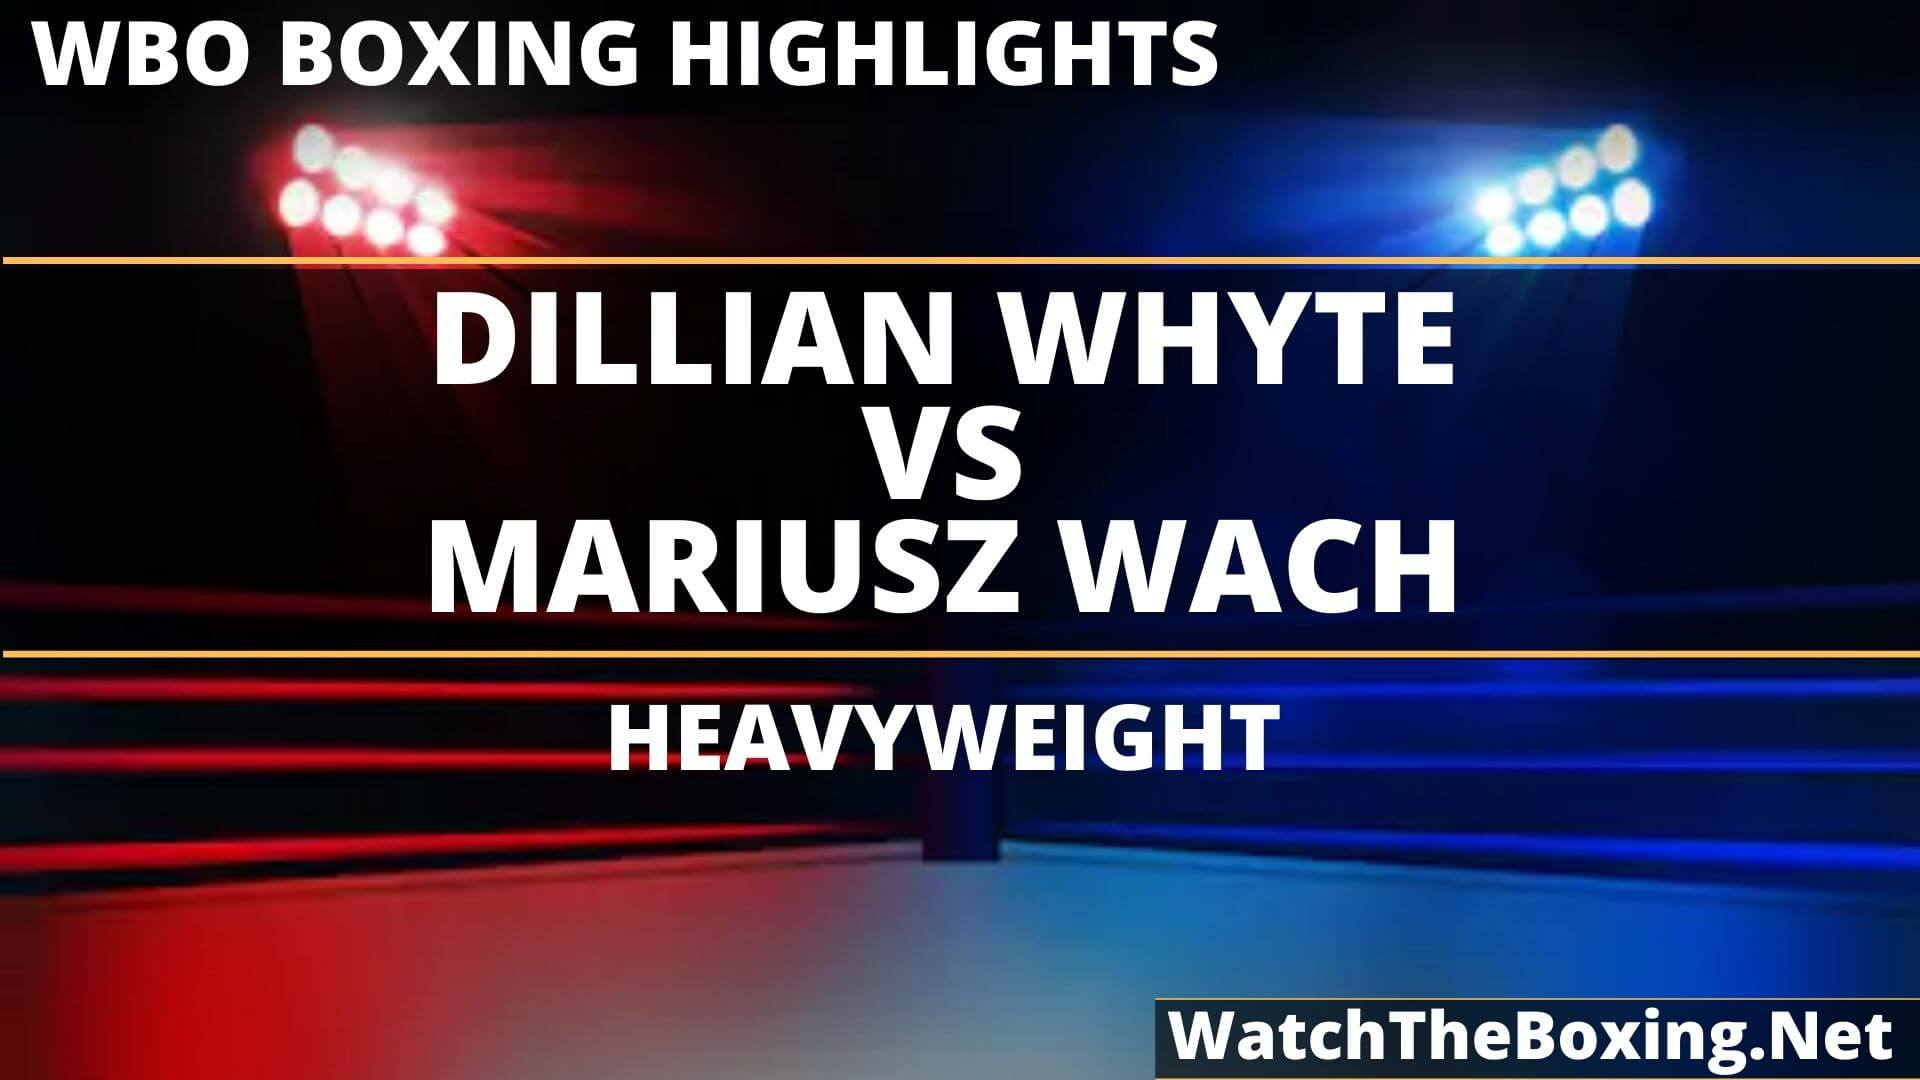 Dillian Whyte Vs Mariusz Wach Highlights 2019